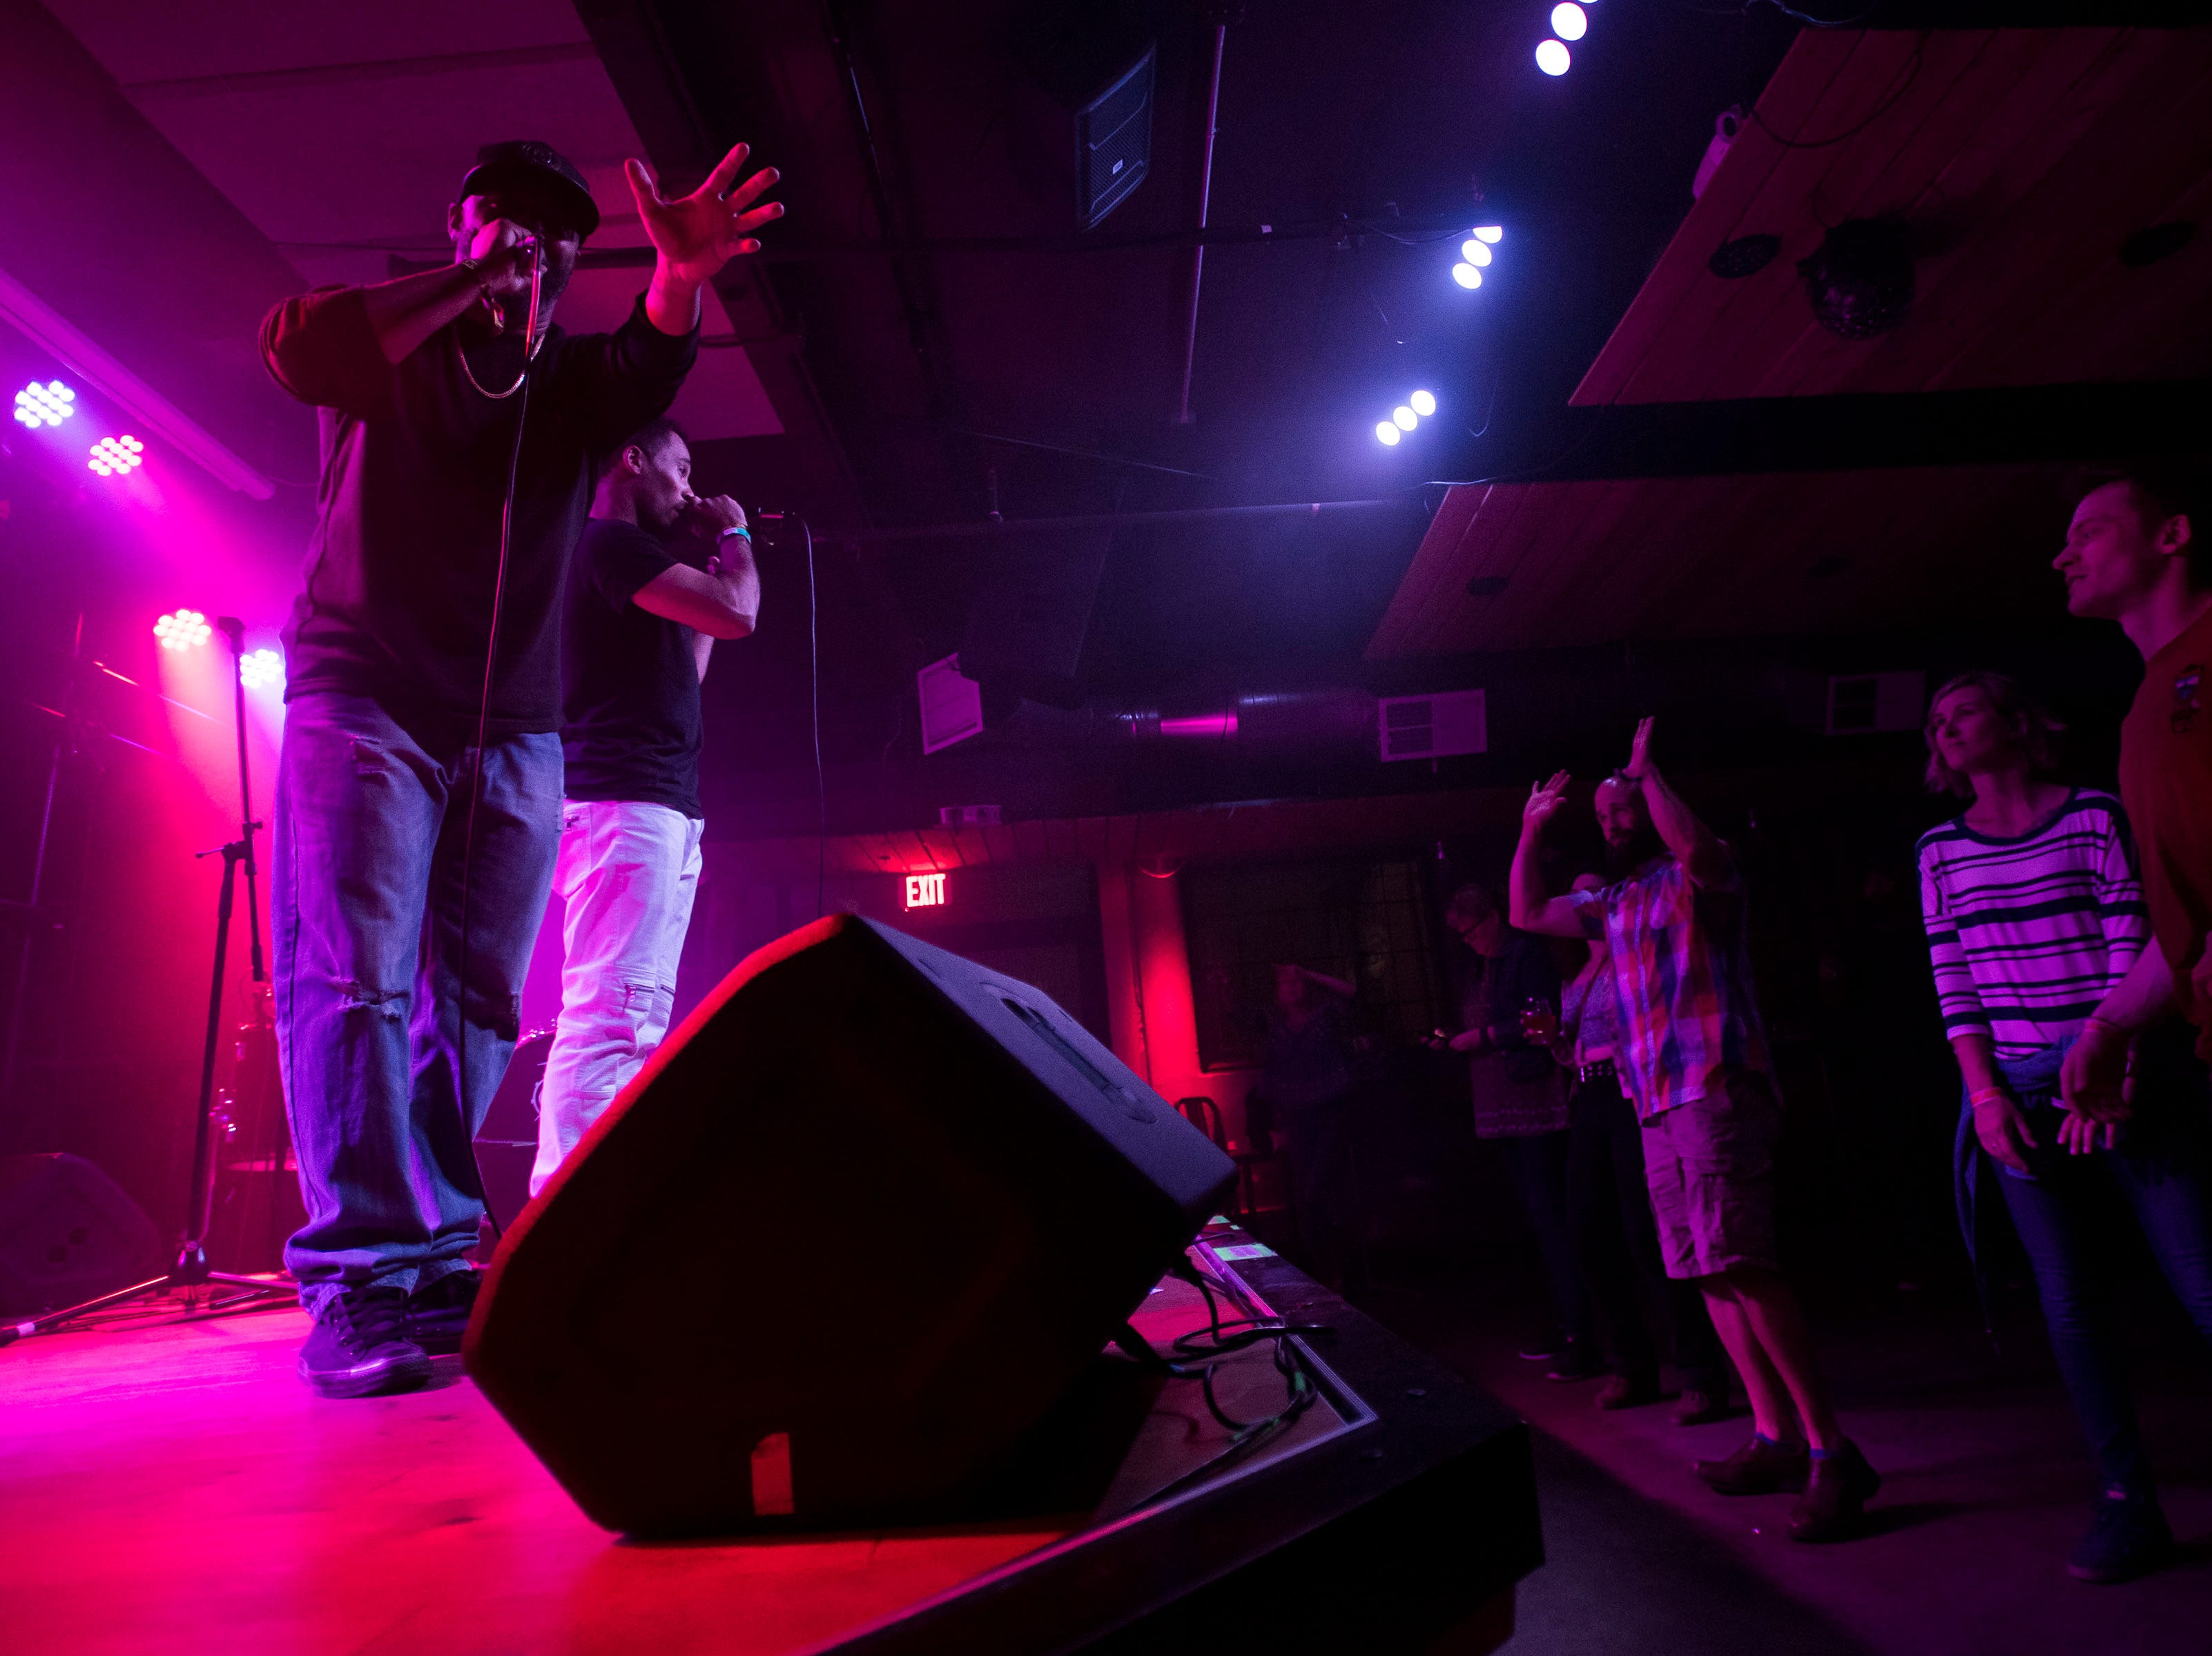 SF1 plays a set at Downtown Artery during the FoCoMX XI music festival on Saturday, April 27, 2019, in Fort Collins, Colo.